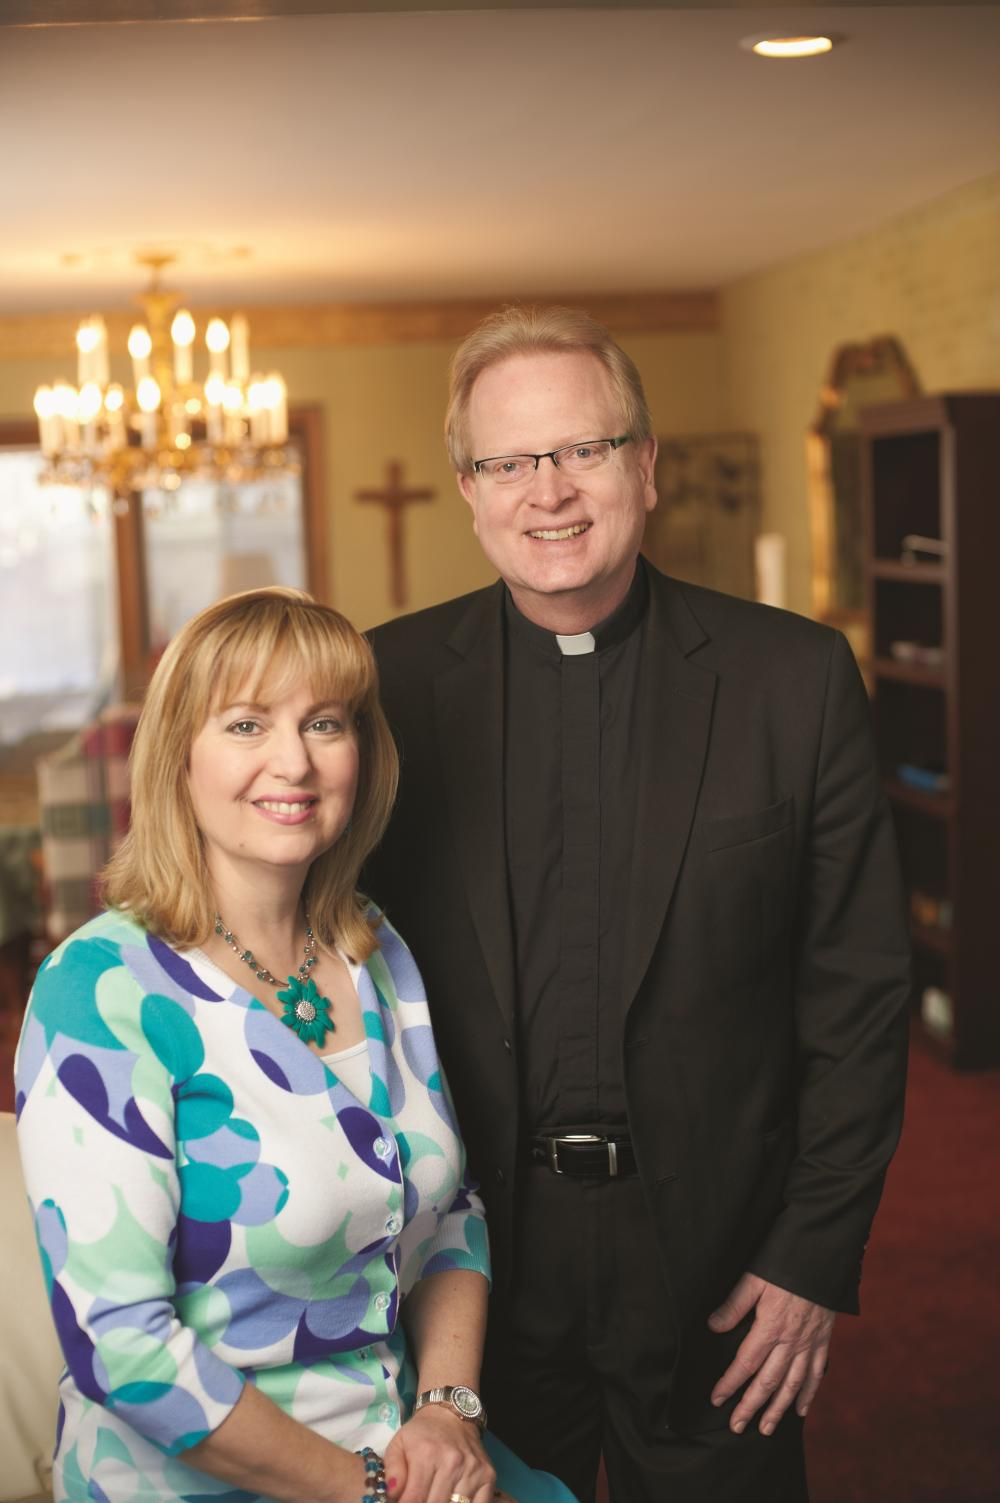 Parenting tips from a priest and his wife - Father Steve and Cindy Anderson